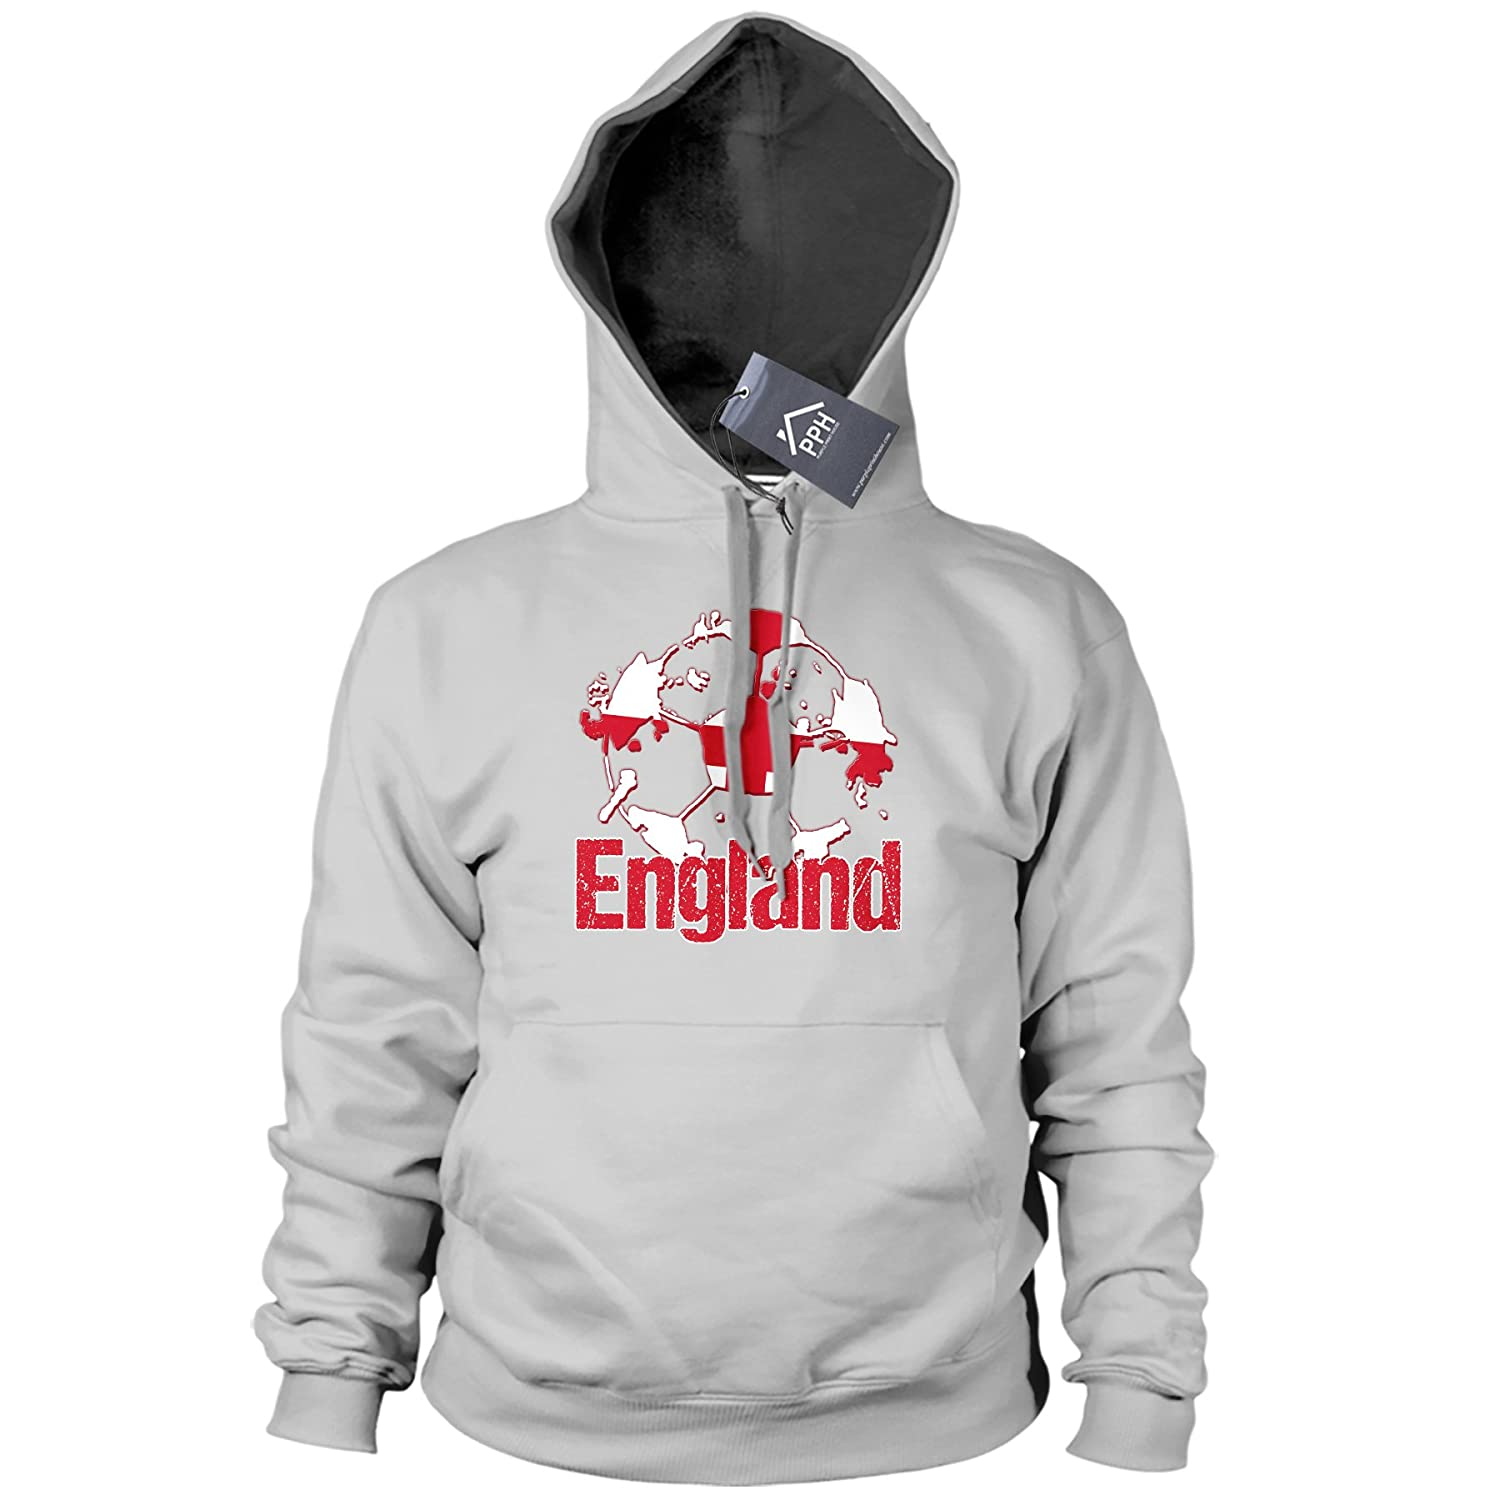 England Football Shirt Three Lions Supporters Range Hoodie